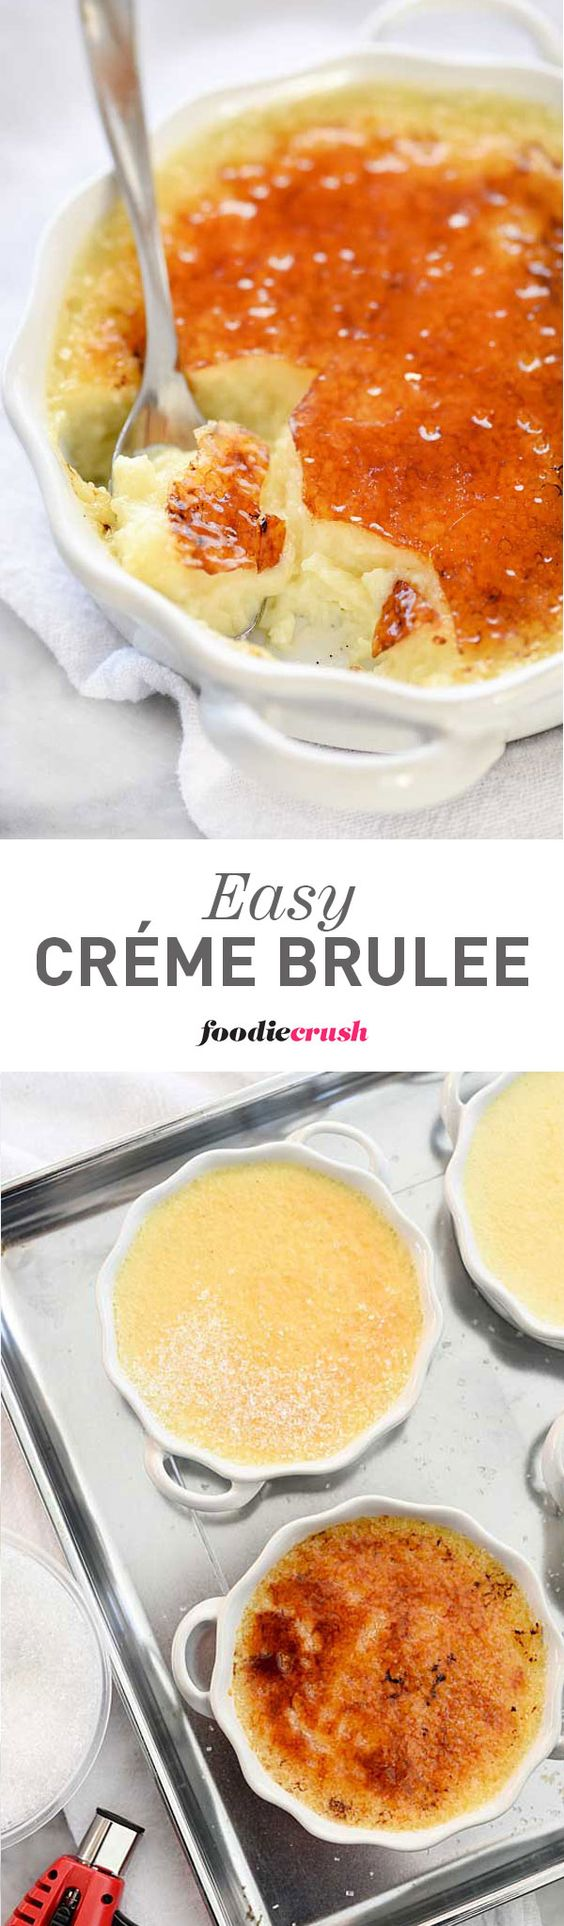 ... simple rules, it's really one of the simplest desserts to master